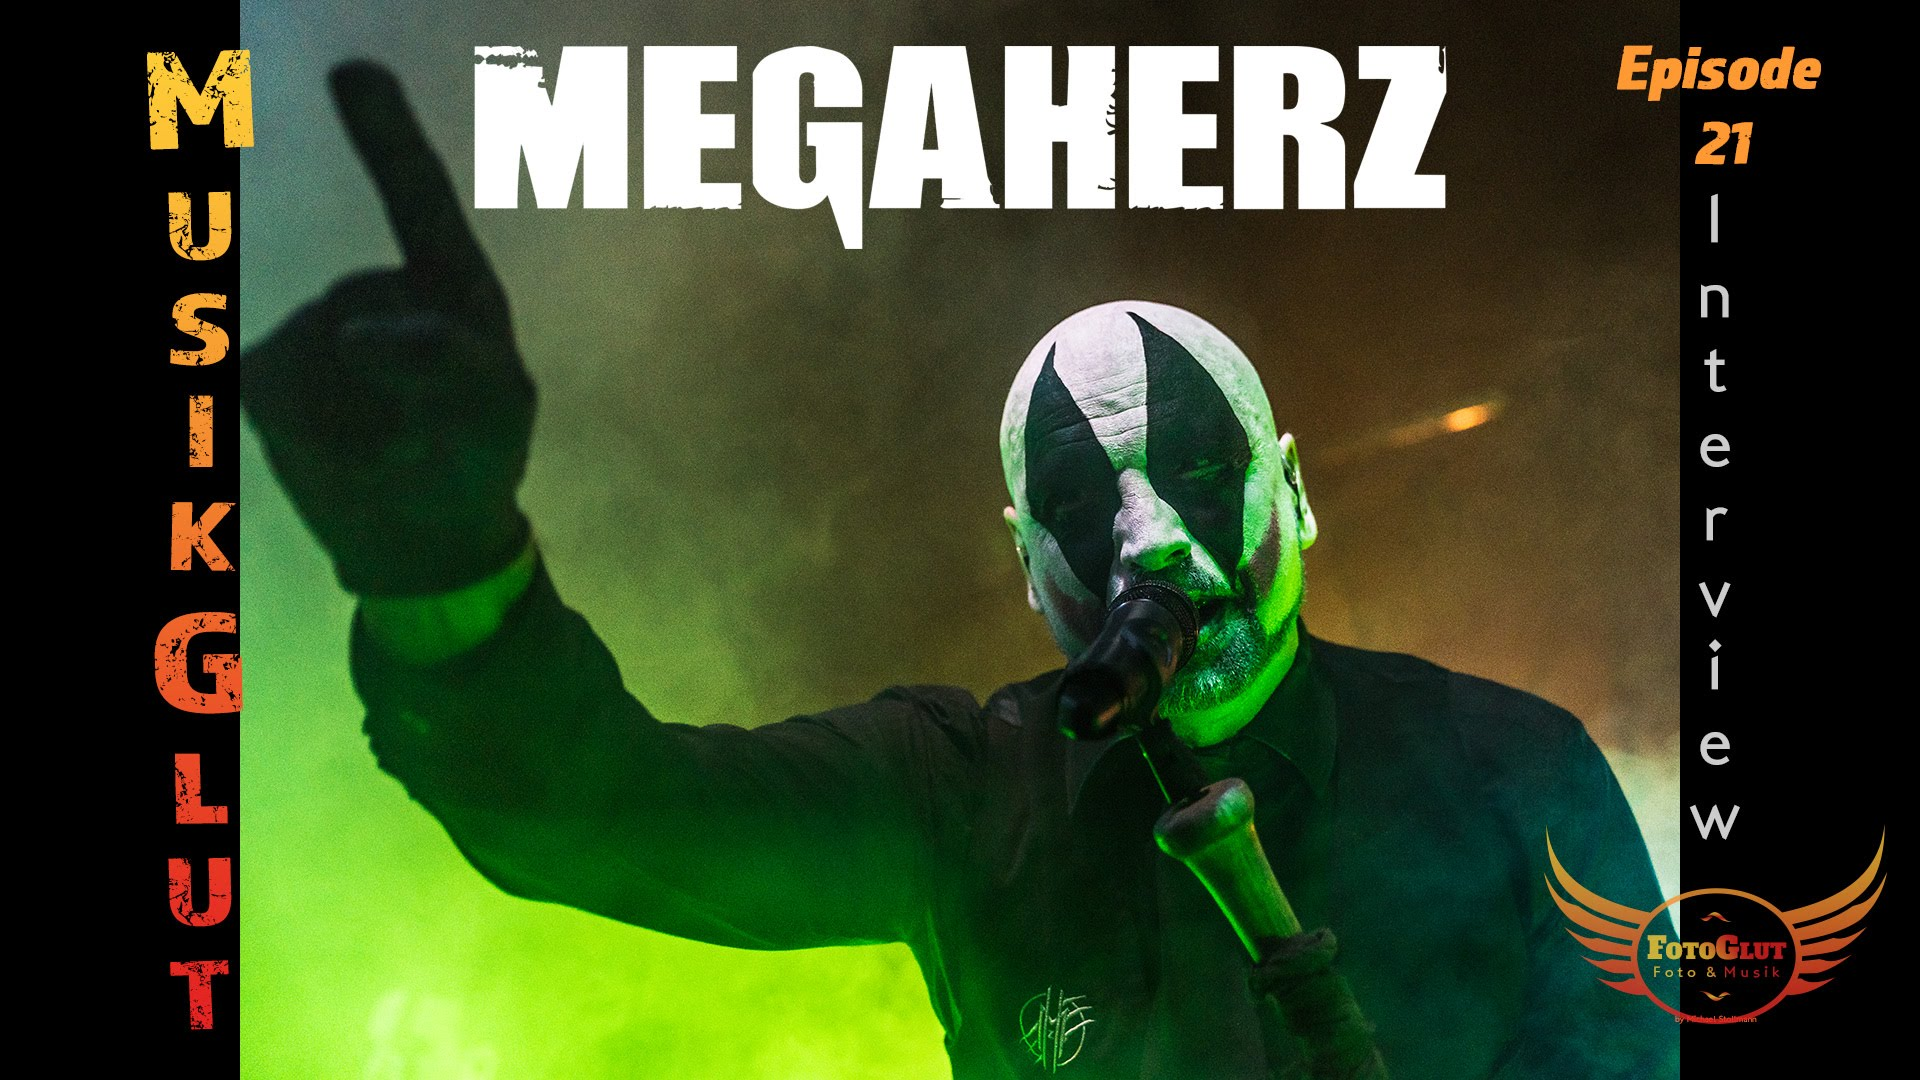 Megaherz im Interview - Musikglut 21